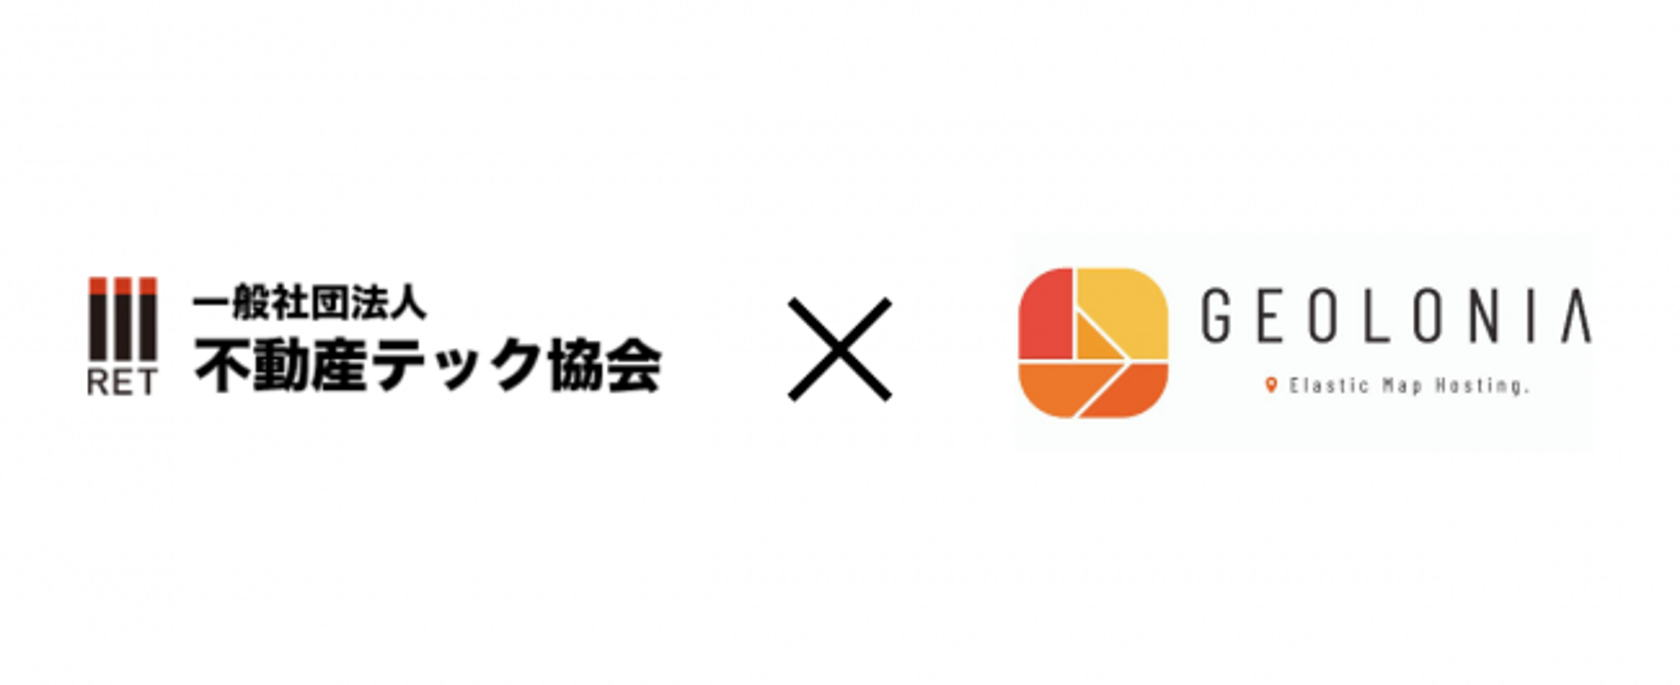 Geoloniaと不動産テック協会ロゴ